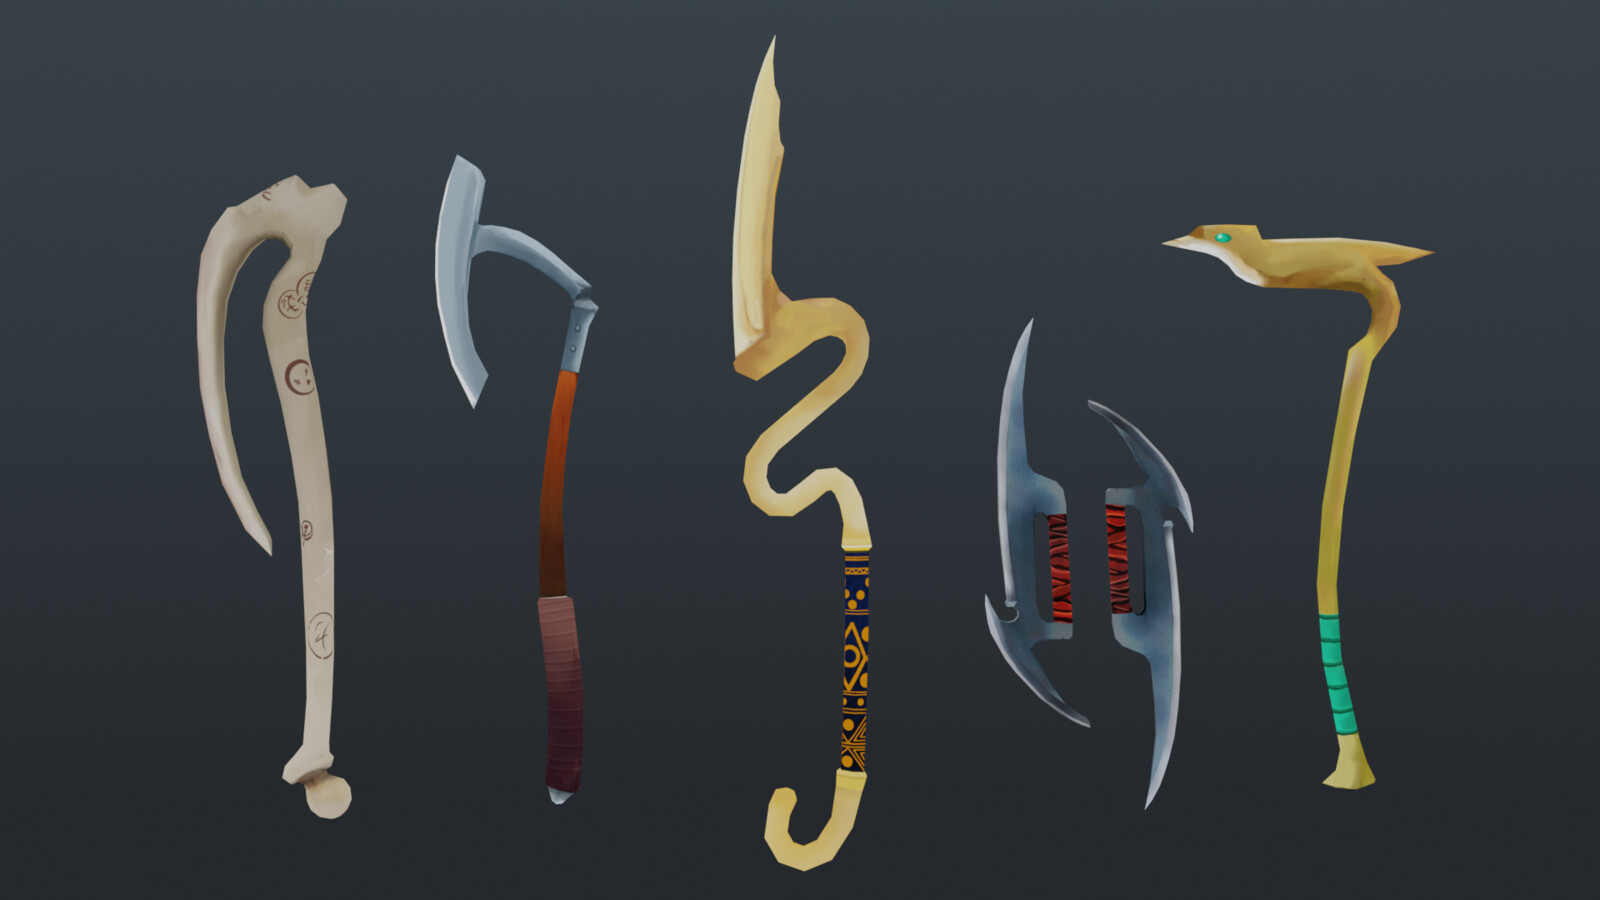 Lowpoly fantasy weapons